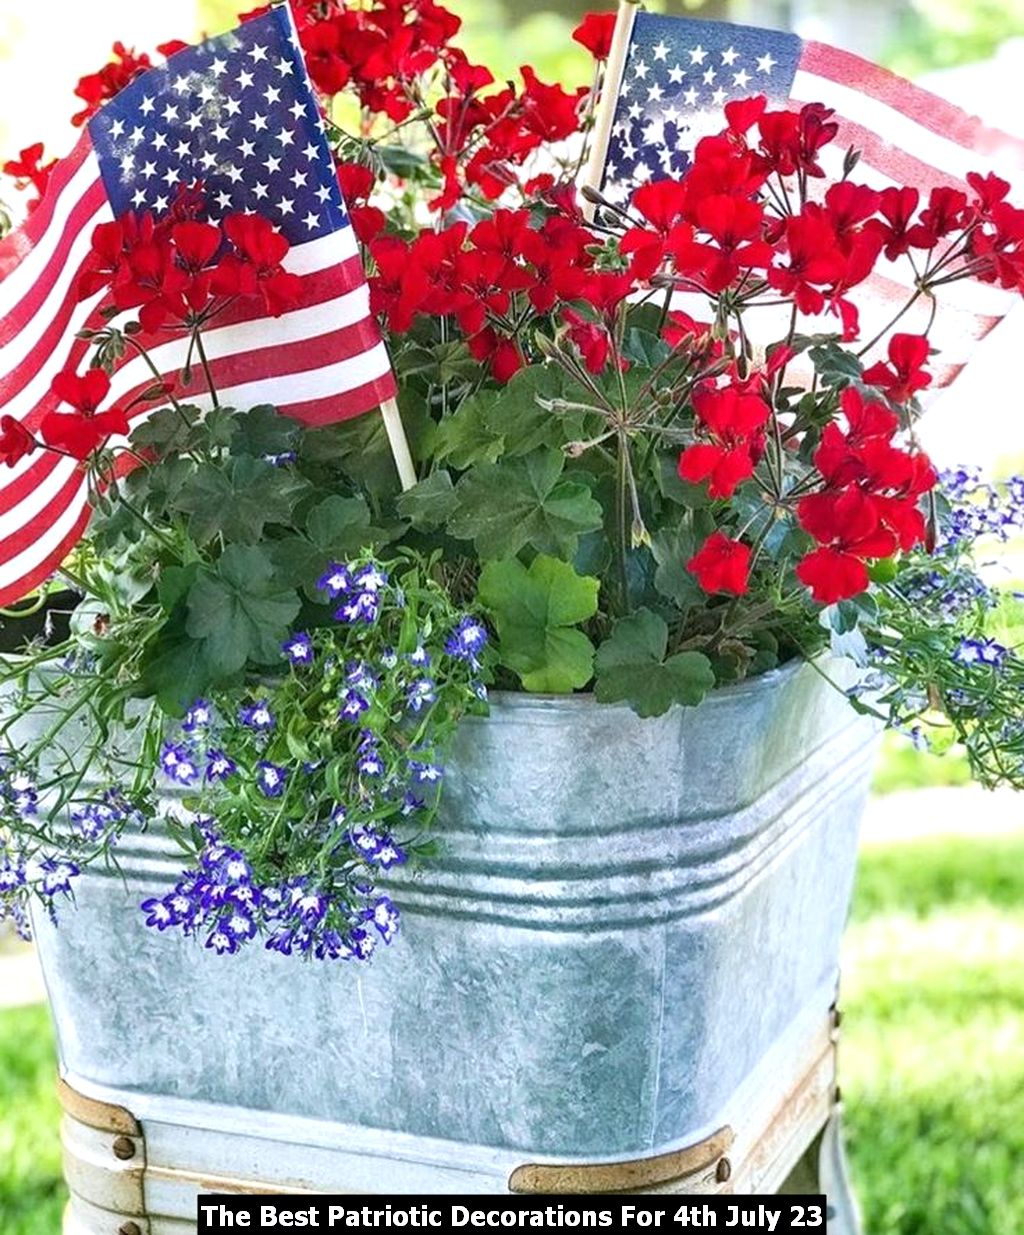 The Best Patriotic Decorations For 4th July 23